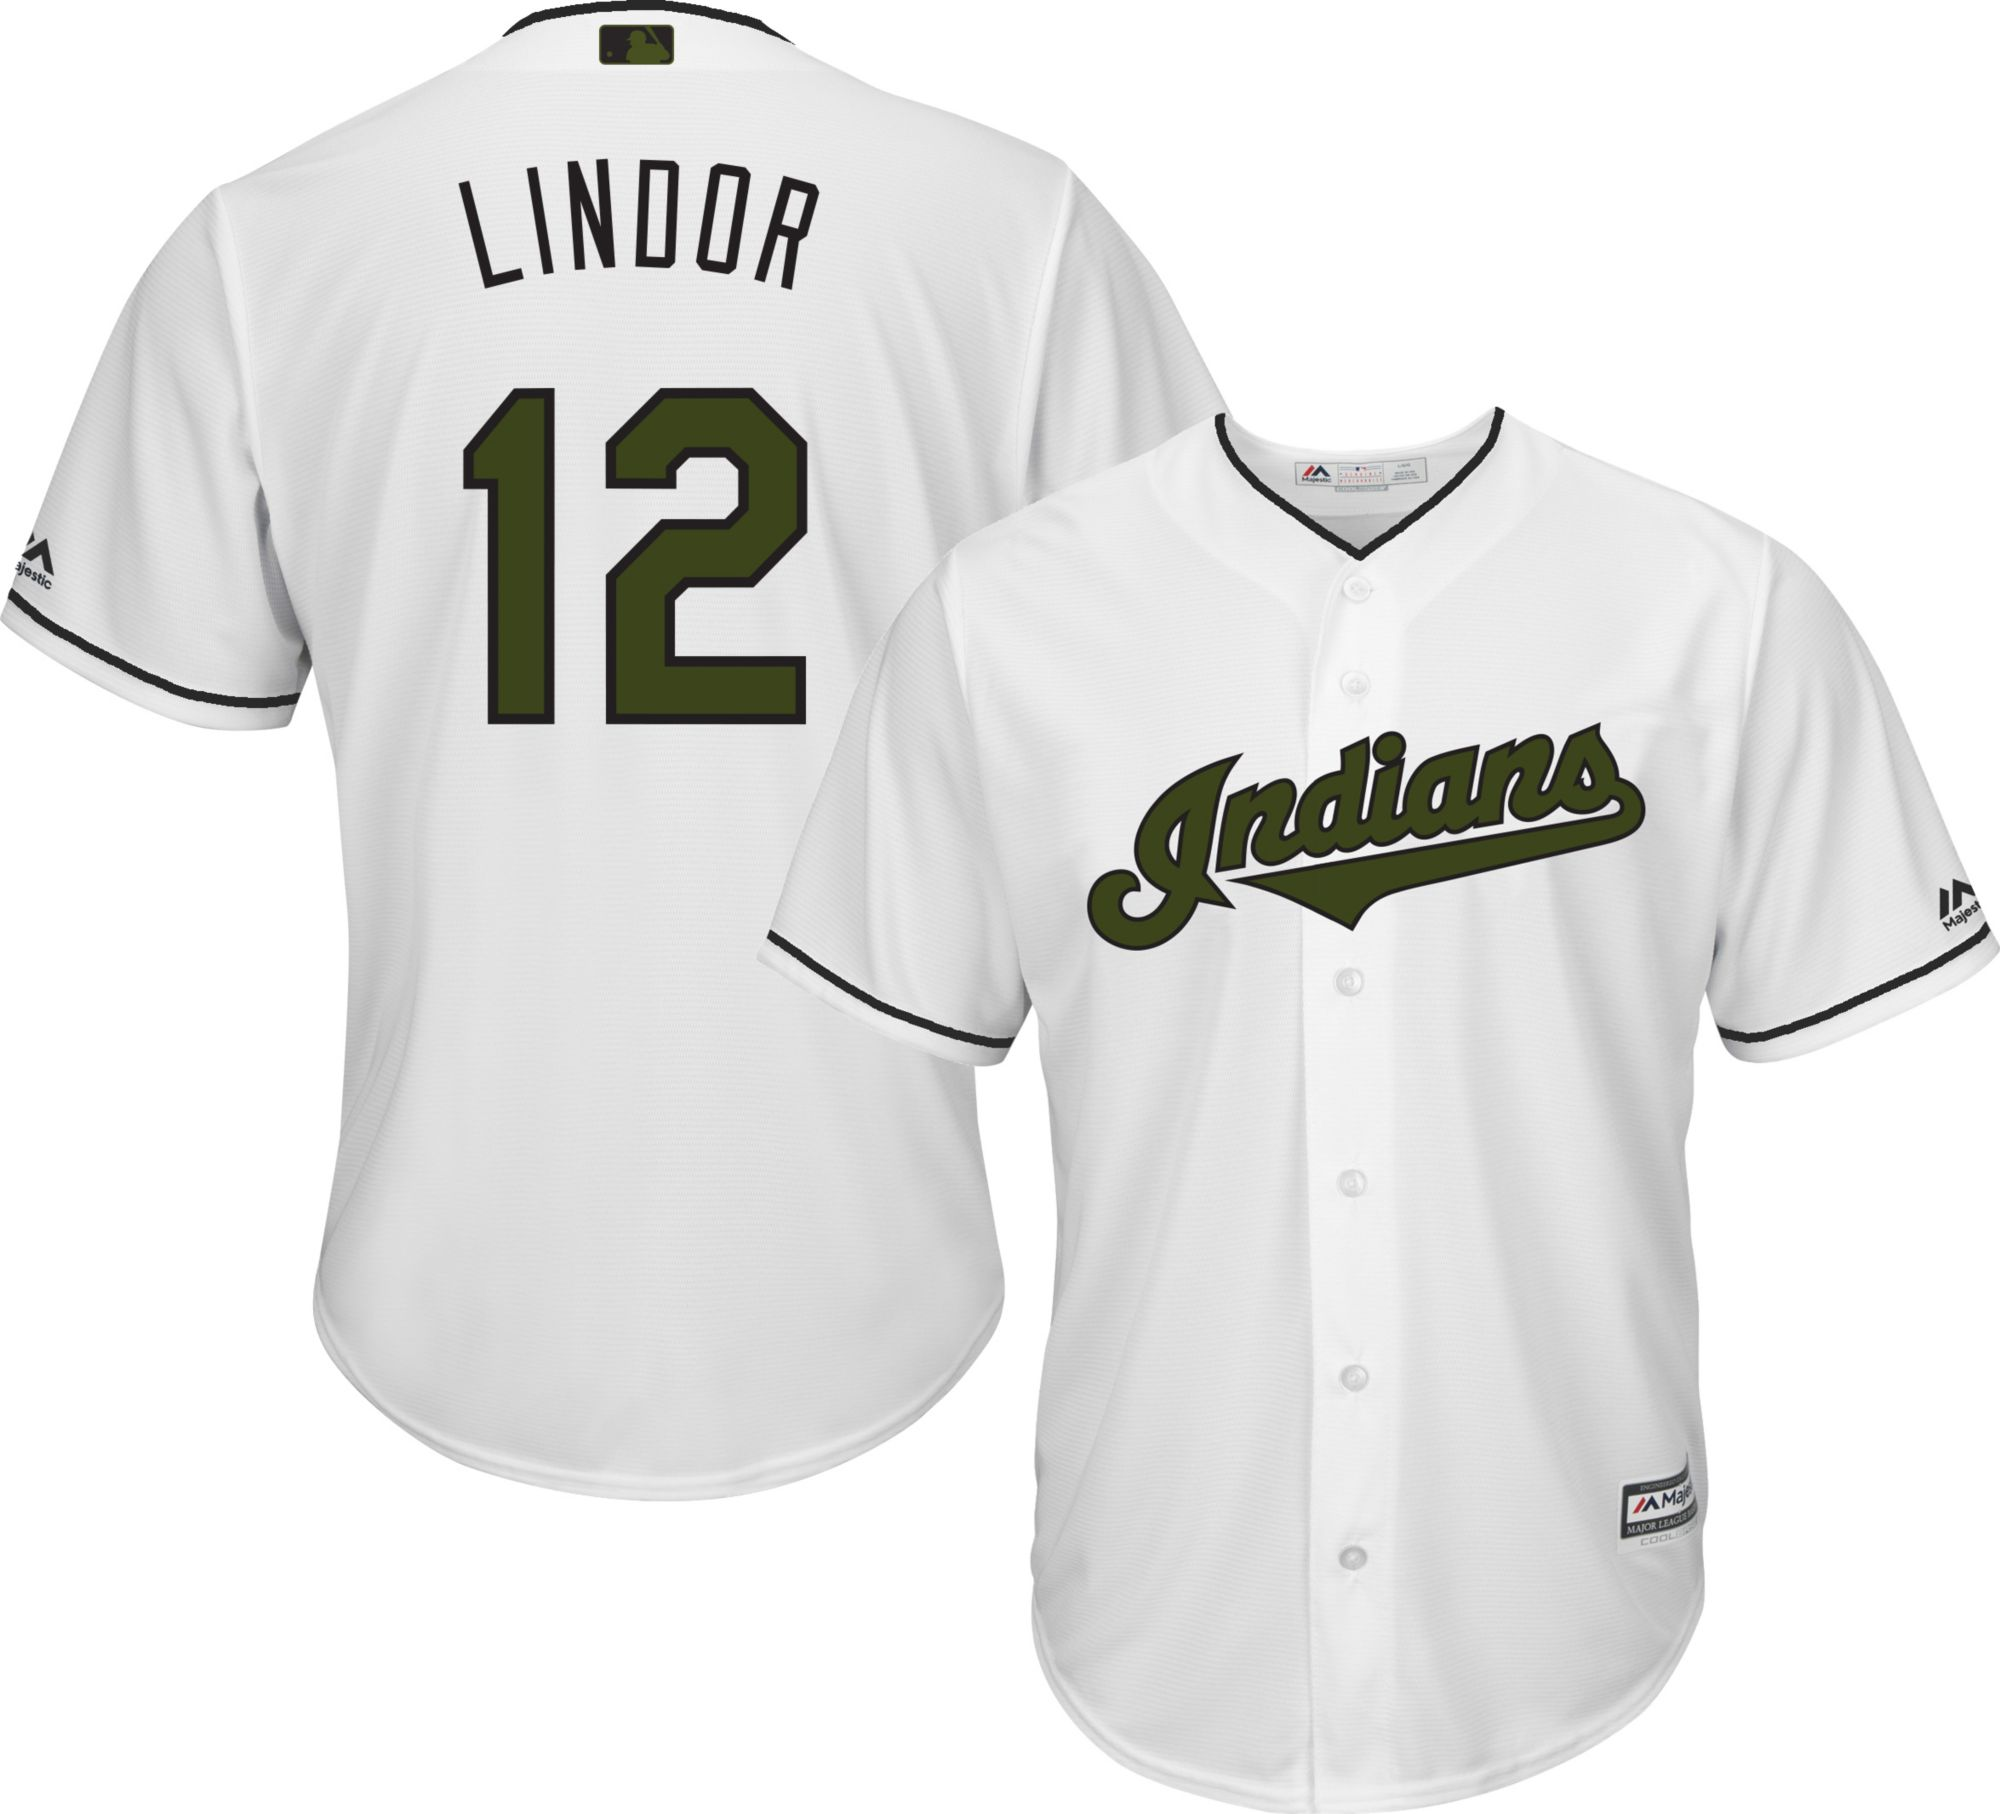 174319c30 ... Majestic Mens Replica Cleveland Indians Francisco Lindor 12 Francisco  Lindor Cleveland Indians Mens Majestic 12 Authentic Alternate Cool Base MLB  Jersey ...